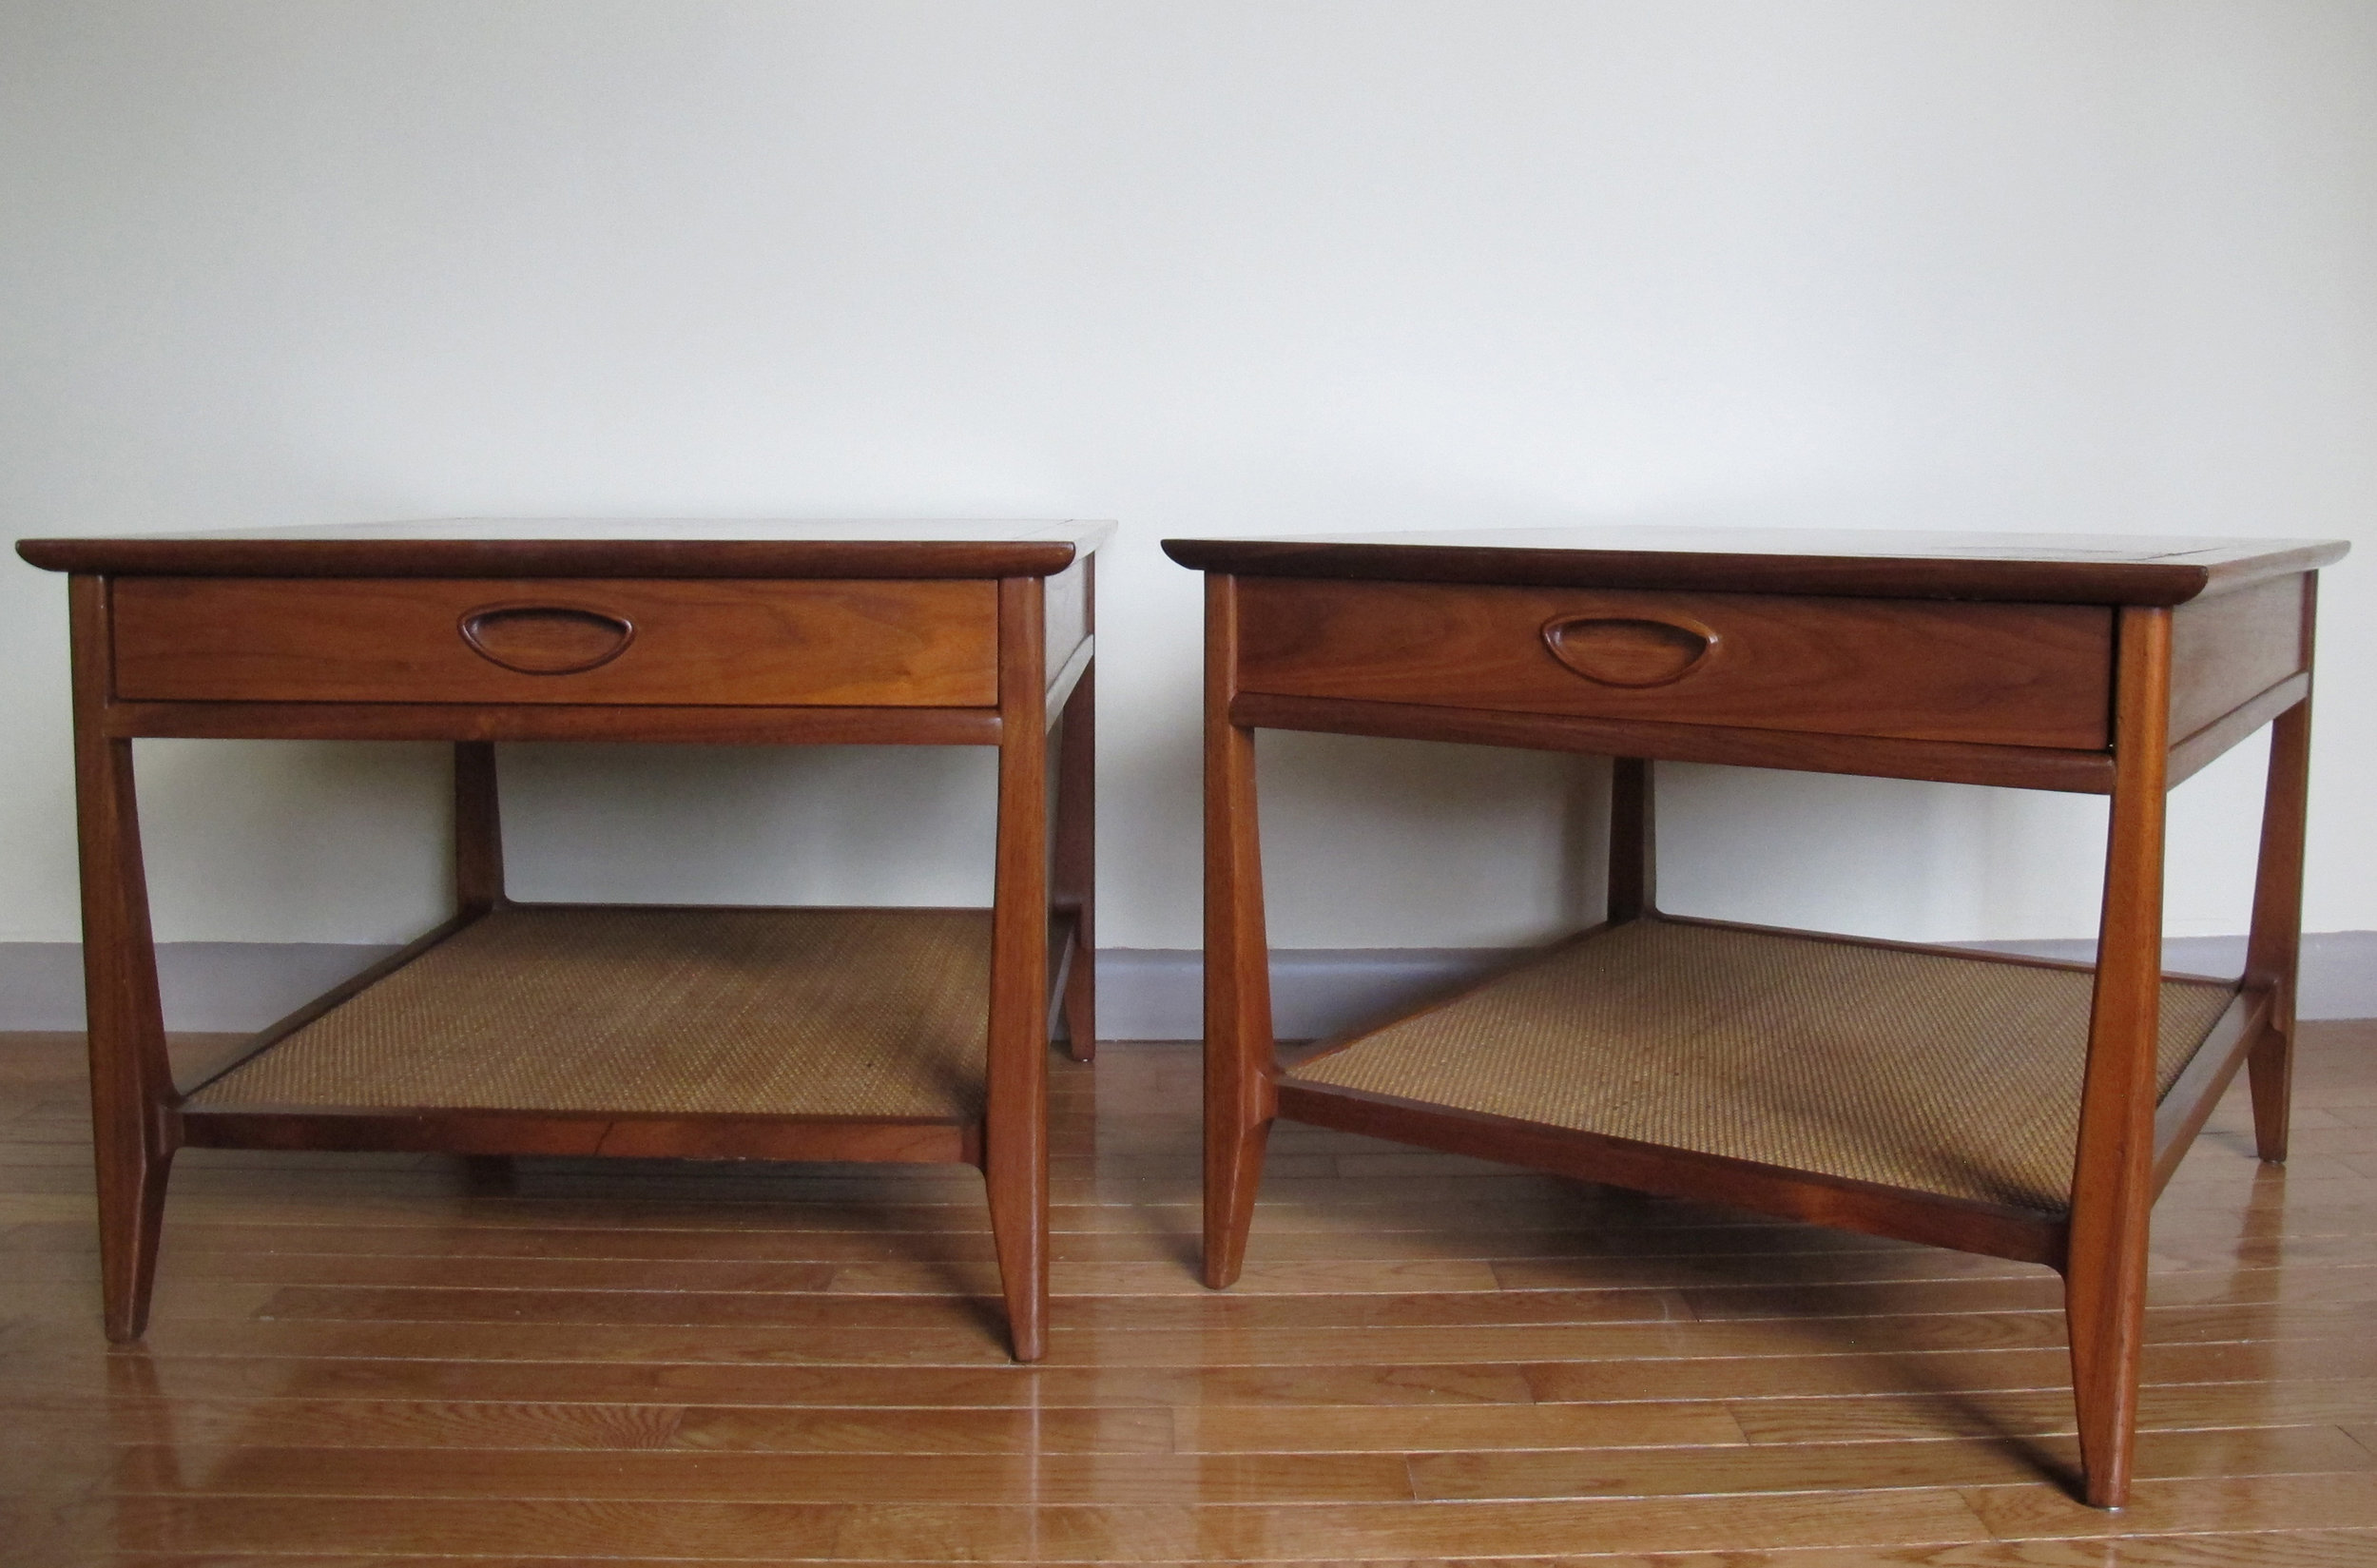 PAIR OF HERITAGE MID CENTURY WALNUT & CANE TWO-TIER END TABLES